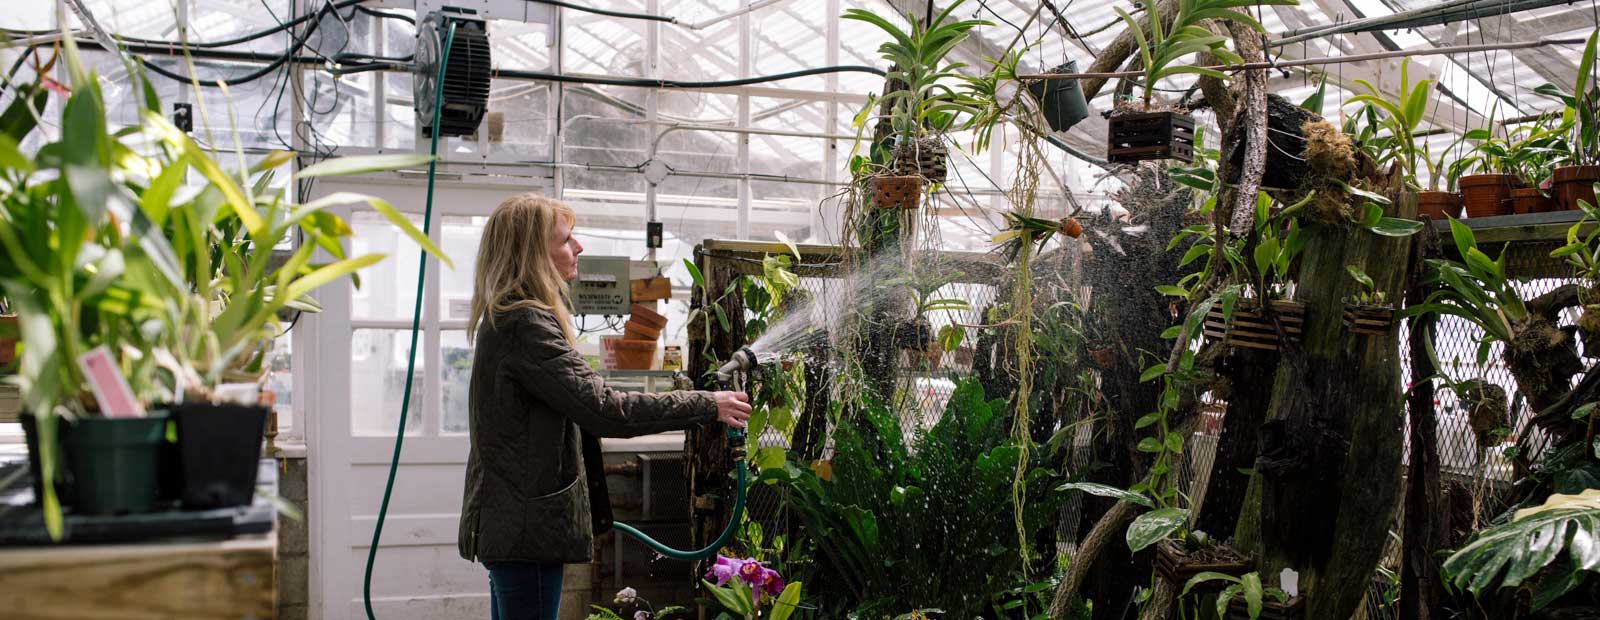 A volunteer for the Cranbrook House and Gardens, Lisa Markevich waters tropical plants in the Conservatory Greenhouse.